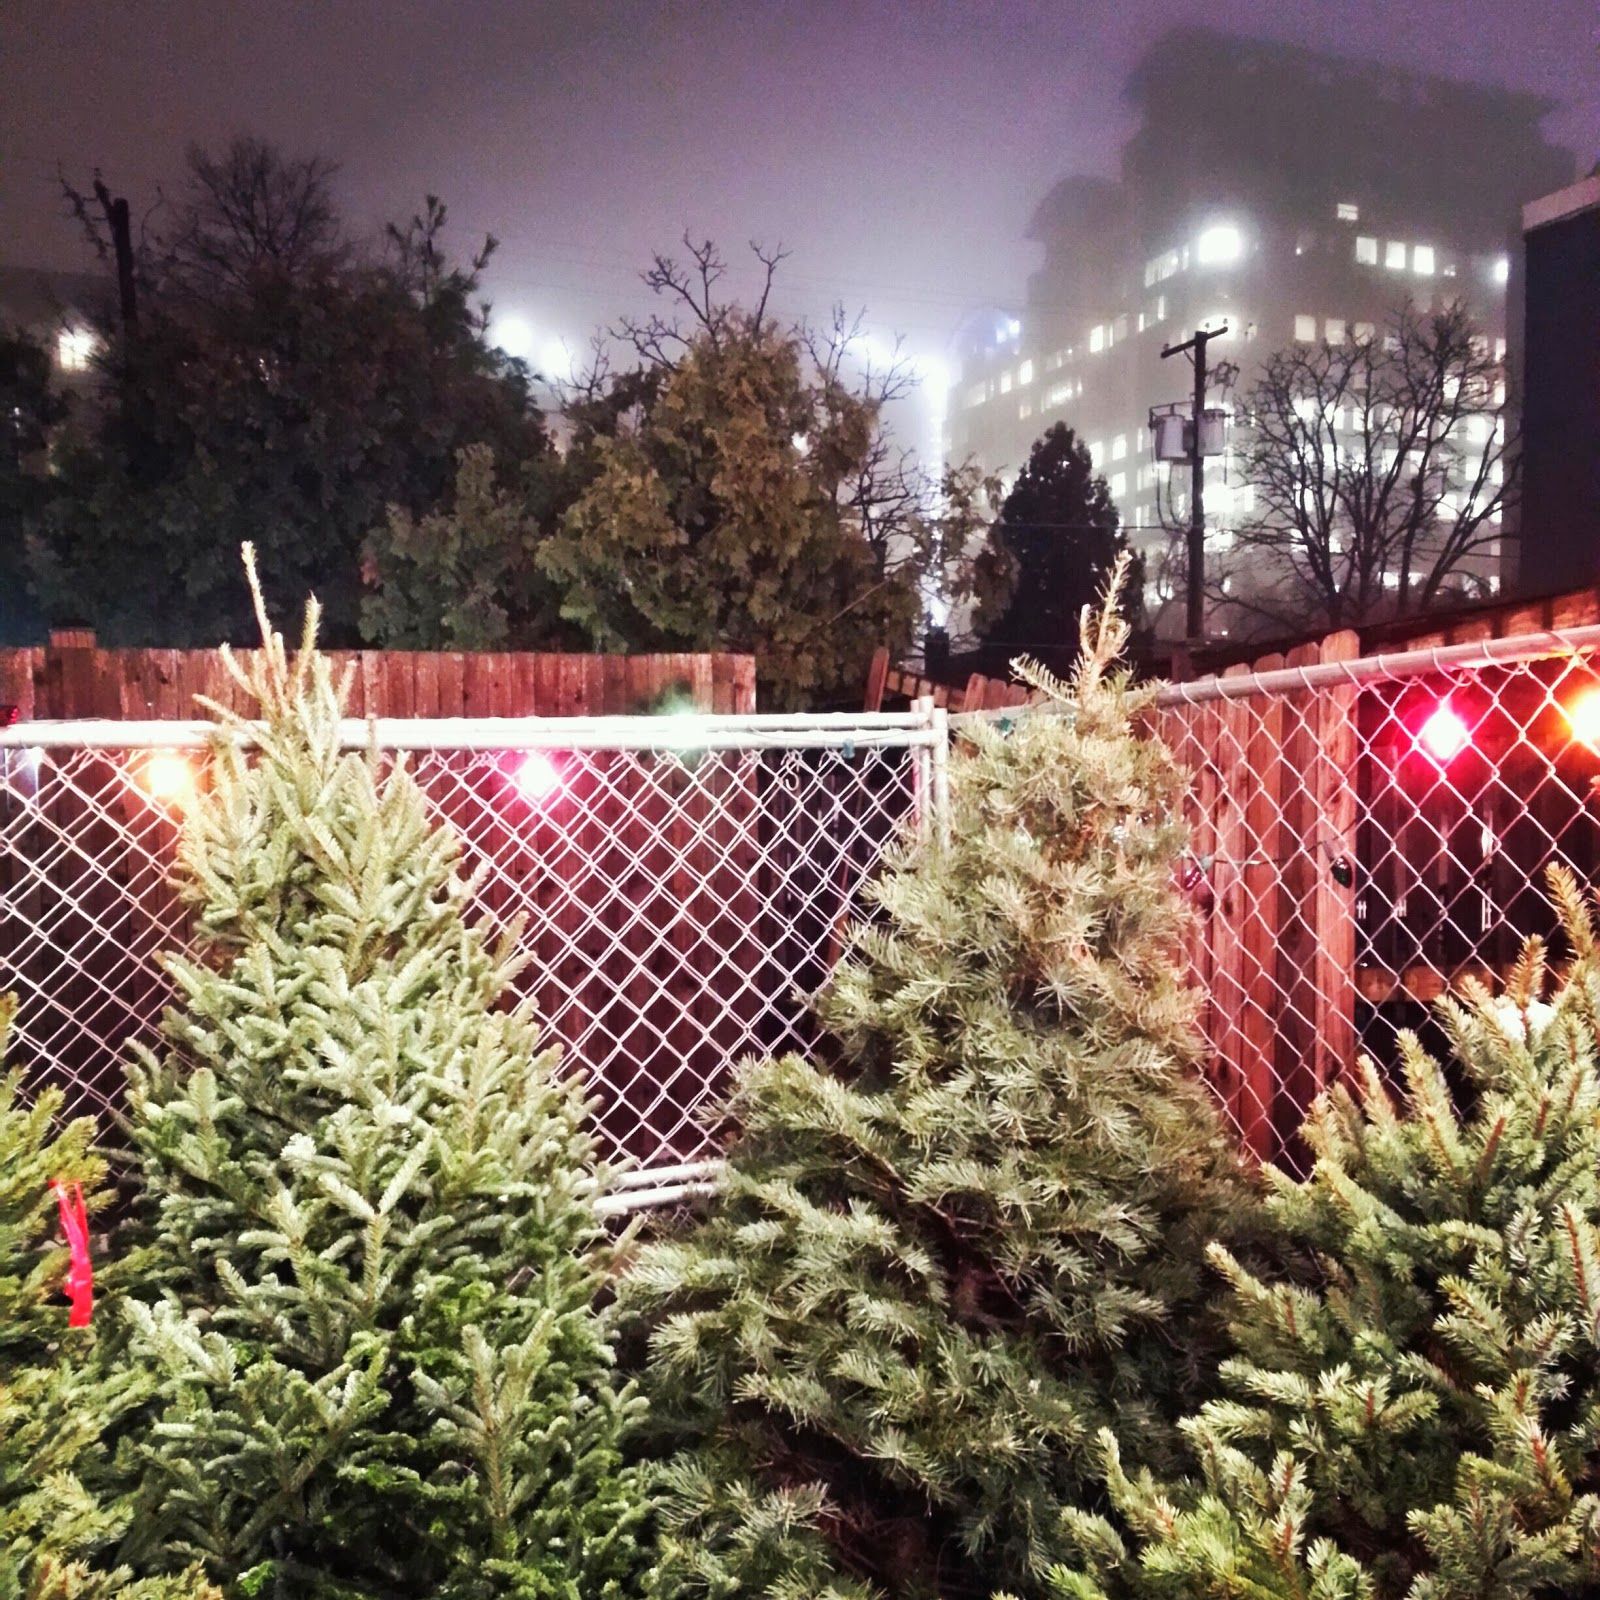 Buy Christmas Tree Seedlings: Robert Dyer @ Bethesda Row: Where To Buy Christmas Trees